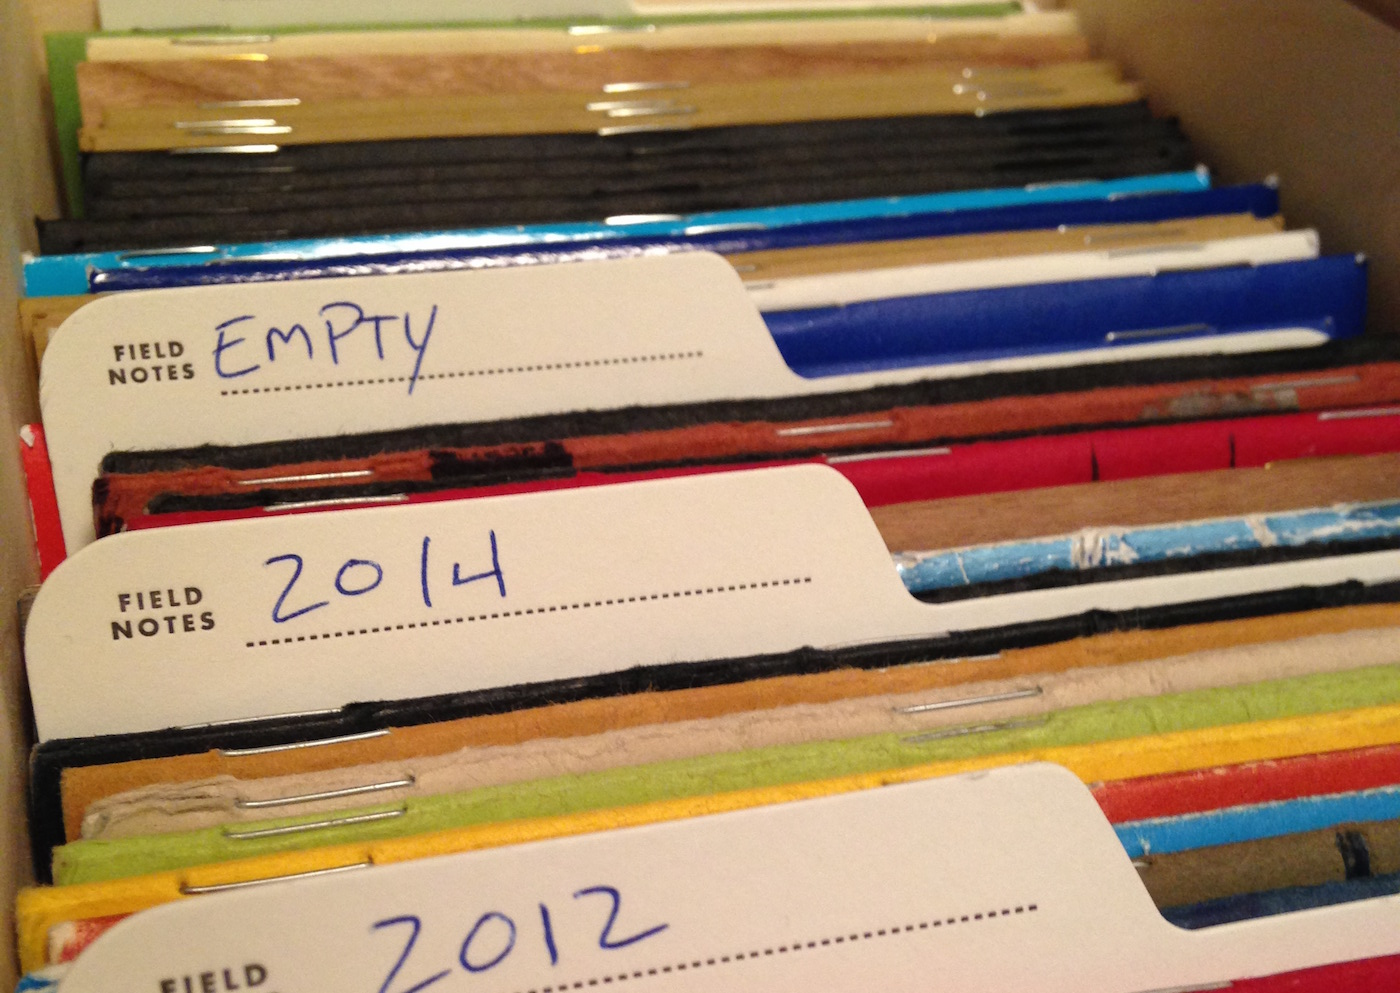 Stored notebooks